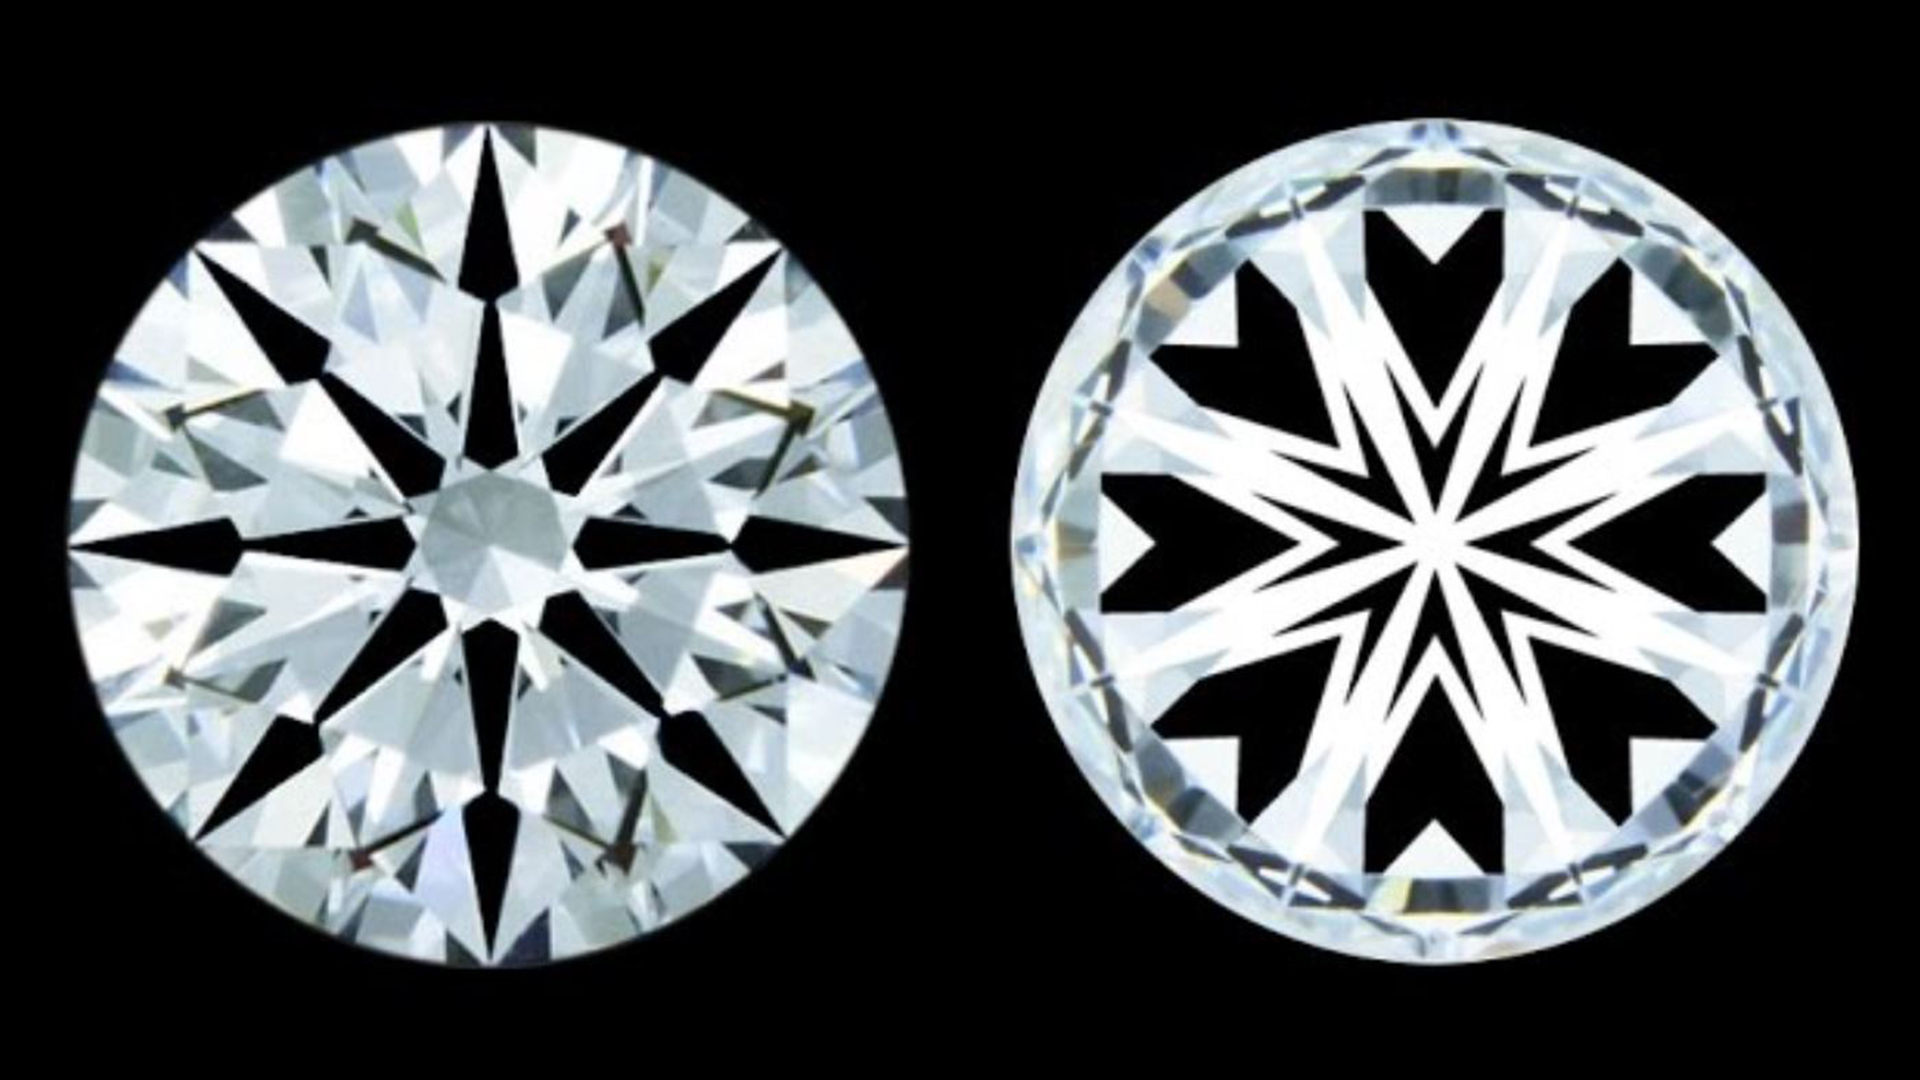 JannPaul Education: Super Ideal Cut Diamond vs Ideal Cut Diamond